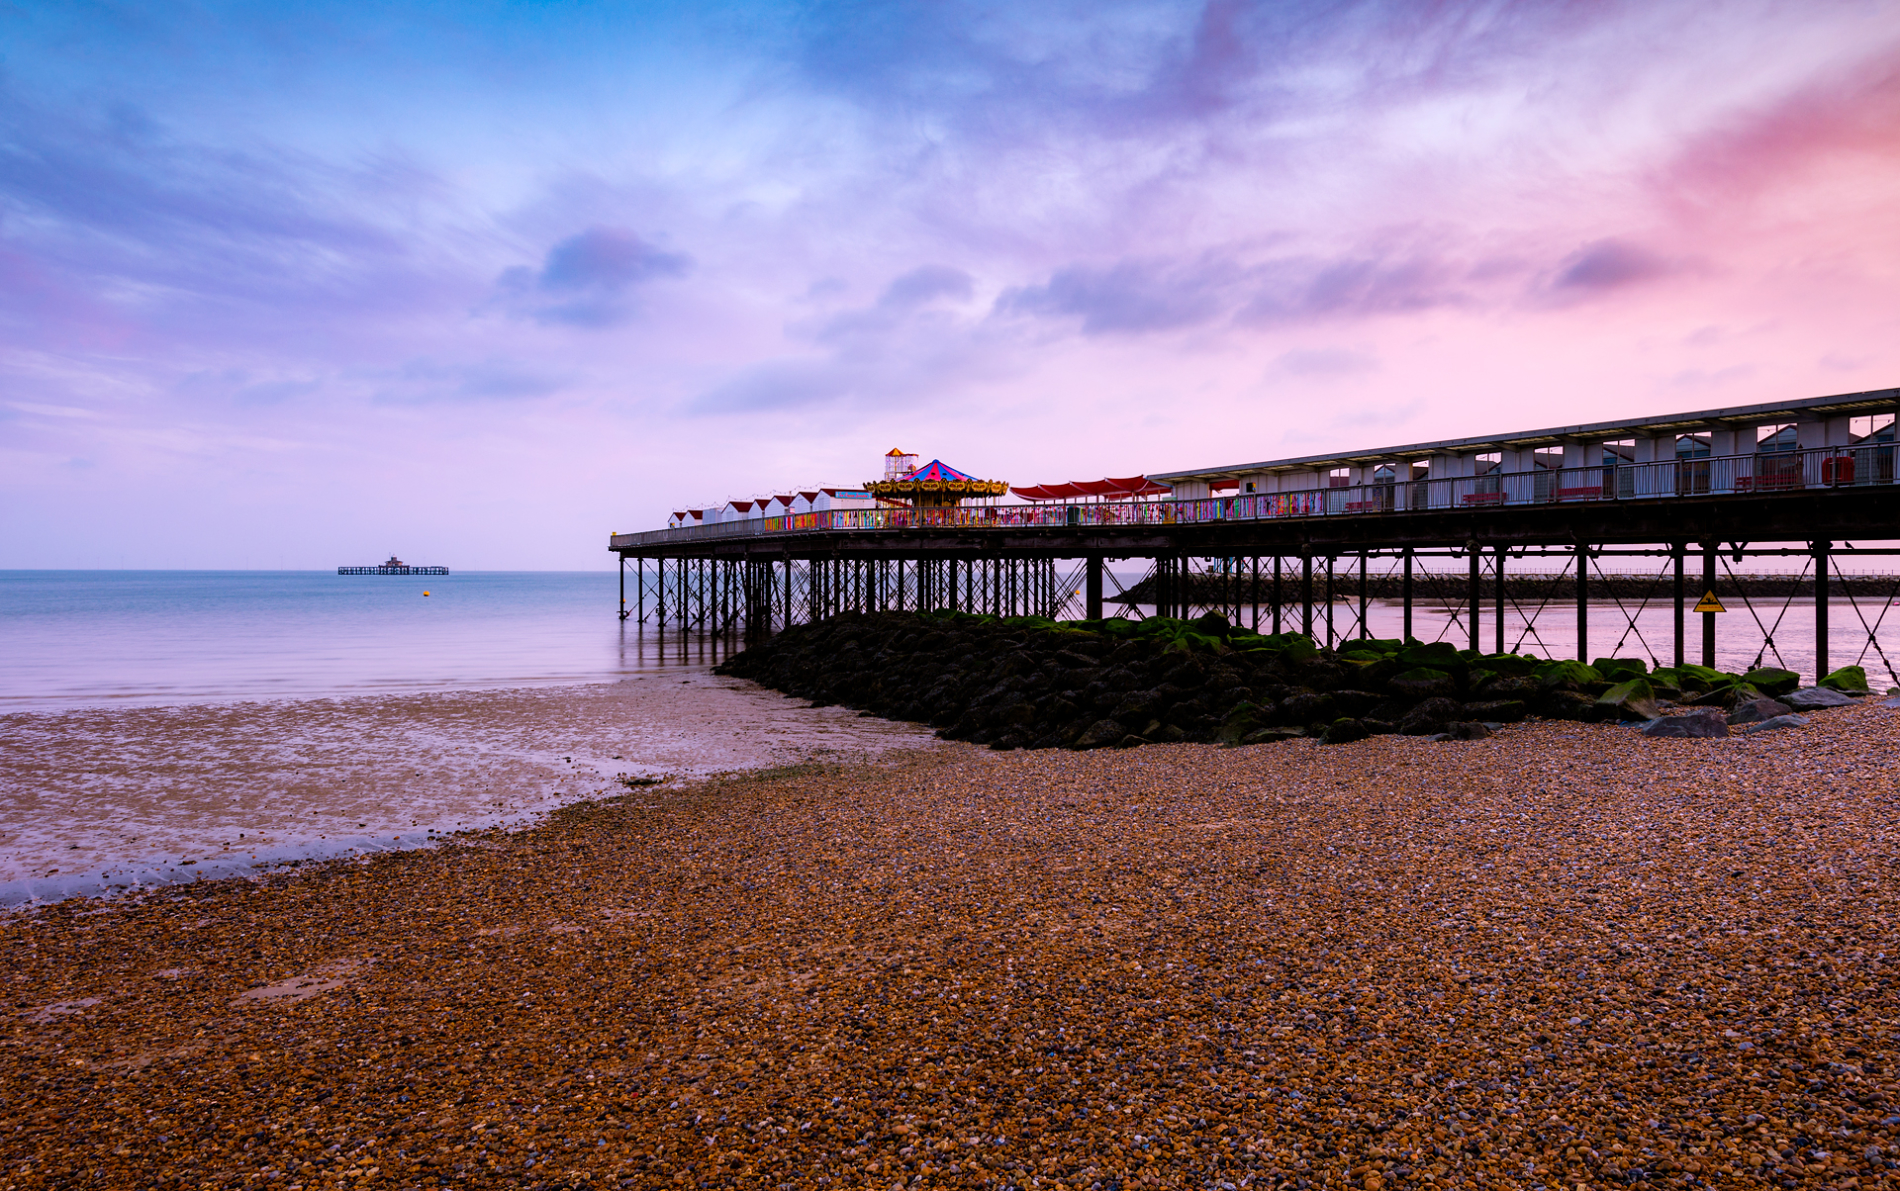 sunrise at herne bay pier